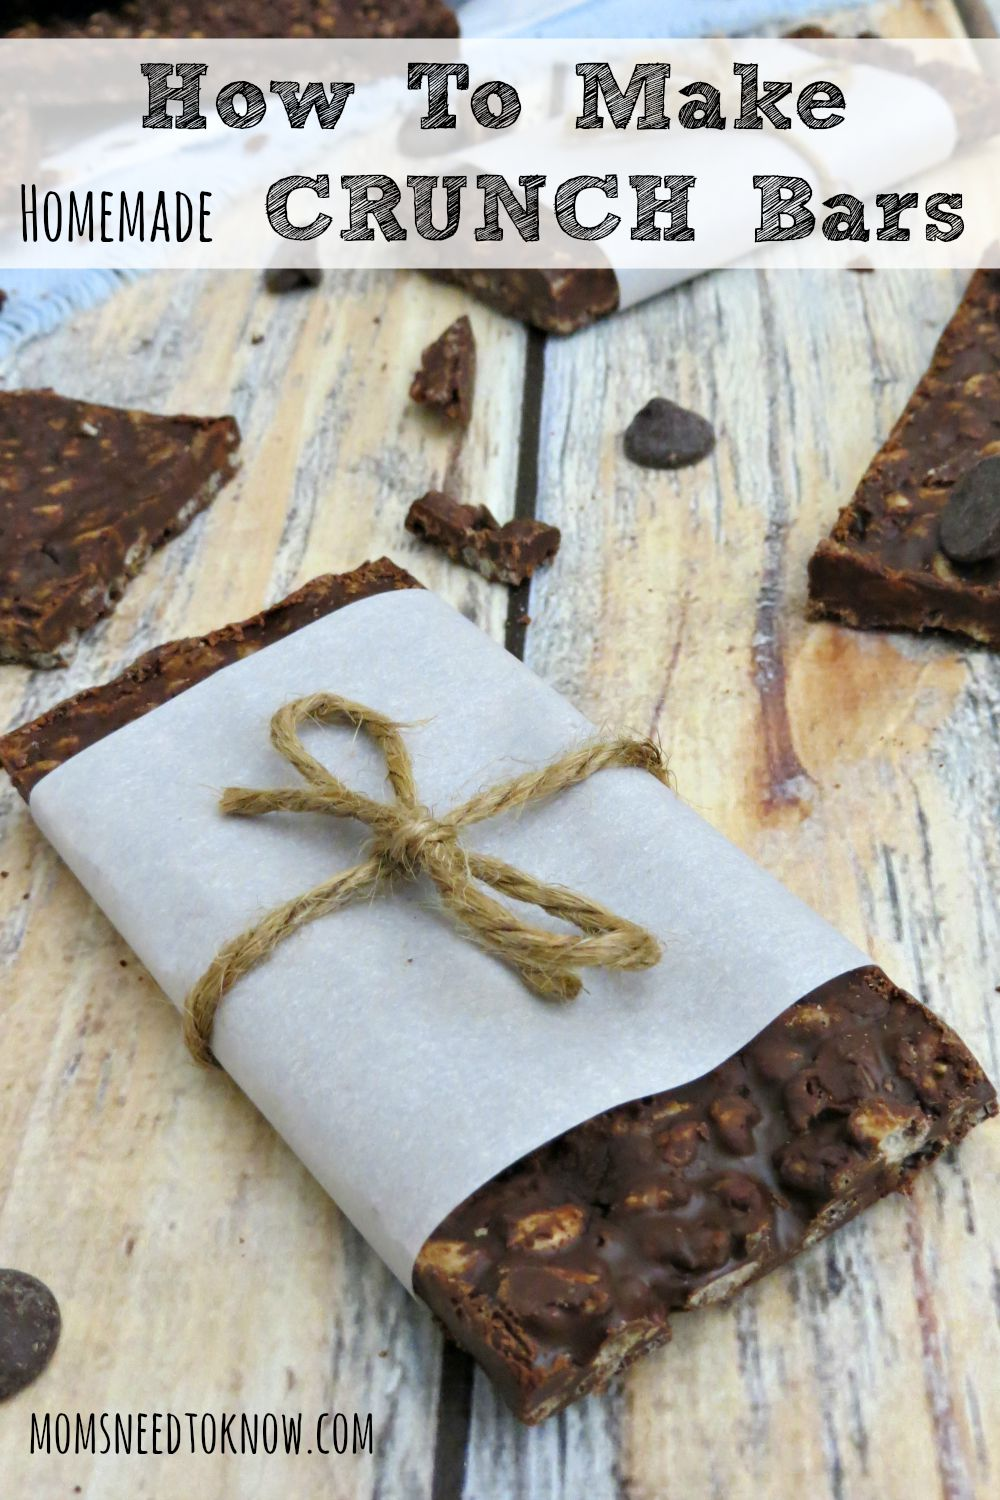 These homemade Crunch bars are very easy to make and really delicious! Make a big batch and store them in your freezer (or add them to your cookie trays!)